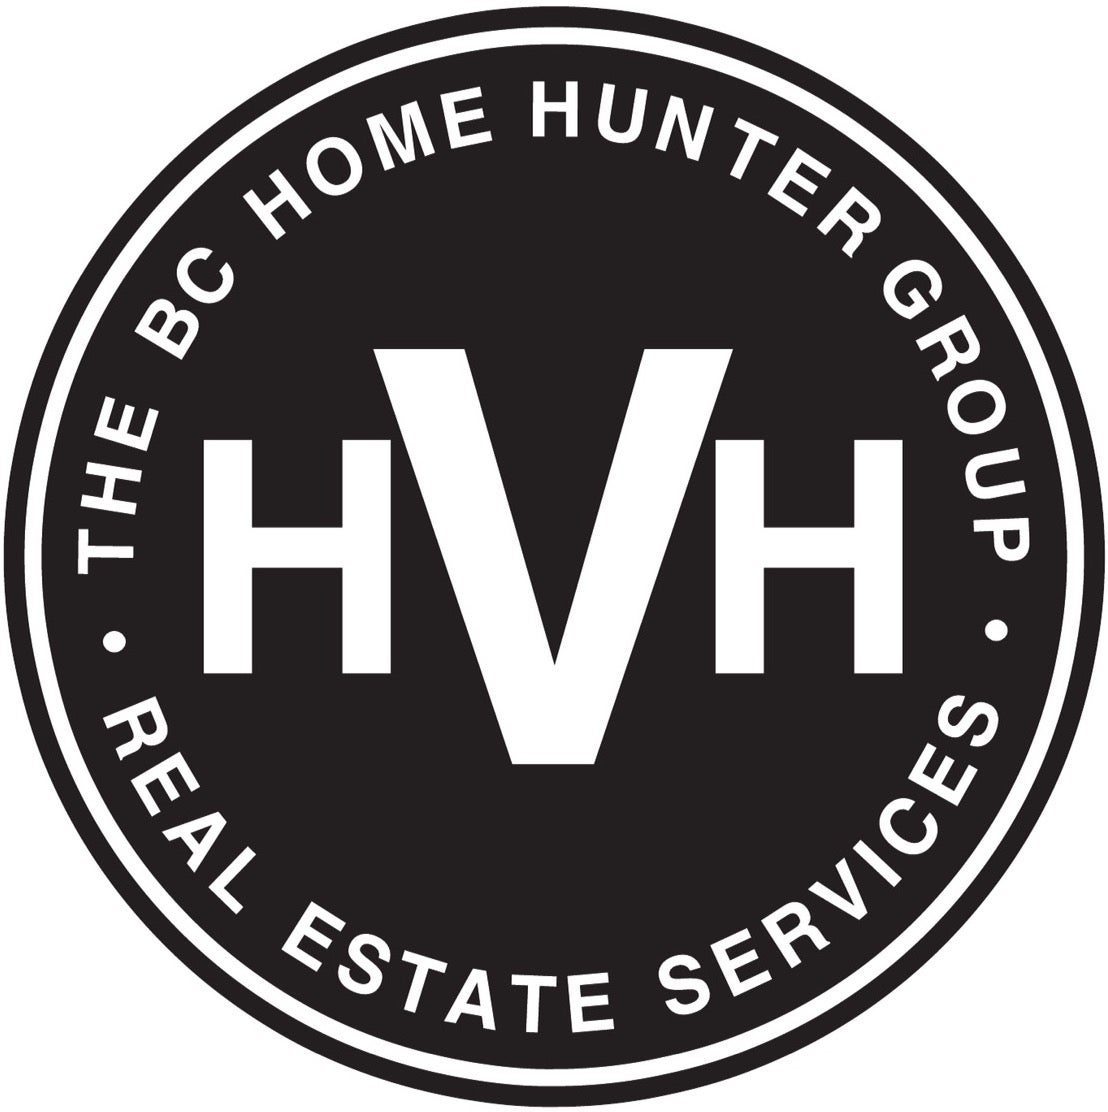 THE BC HOME HUNTER GROUP l AWARD WINNING URBAN & SUBURBAN METRO VANCOUVER l FRASER VALLEY l BC REAL ESTATE EXPERTS 604-767-6736 #BCHOMEHUNTER.COM #BCHH BCHHREALTY.COM #WESELLBC.COM #WELOVEBC.COM #Vancouver #NorthShore #WestVancouver #NorthVancouver #FraserValley #CoalHarbour #Kerrisdale #Kitsilano #PointGrey #Marpole #Dunbar #Oakridge #Coquitlam #EastVan #NorthShoreHomehunter #Yaletown #FraserValleyHomeHunter #VancouverHomeHunter #LynnValley #Lonsdale #WhiteRock #VancouverHomeHunter #FraserValleyHomeHunter  @BCHOMEHUNTER  THE BC HOME HUNTER GROUP  AWARD WINNING URBAN & SUBURBAN REAL ESTATE TEAM WITH HEART 604-767-6736  METRO VANCOUVER I FRASER VALLEY I BC  #Vancouver #WhiteRock #SouthSurrey #Starbucks #WestVancouver #Langley #MapleRidge #NorthVancouver #Langley #FraserValley #Burnaby #FortLangley #PittMeadows #Delta #Richmond #CoalHarbour #Surrey #Abbotsford #FraserValley #Kerrisdale #Cloverdale #Coquitlam #EastVan #Richmond #PortMoody #Yaletown #CrescentBeach #BCHHREALTY #MorganCreek #PortMoody #Burnaby #WeLoveBC #OceanPark #FraserValleyHomeHunter #VancouverHomeHunter